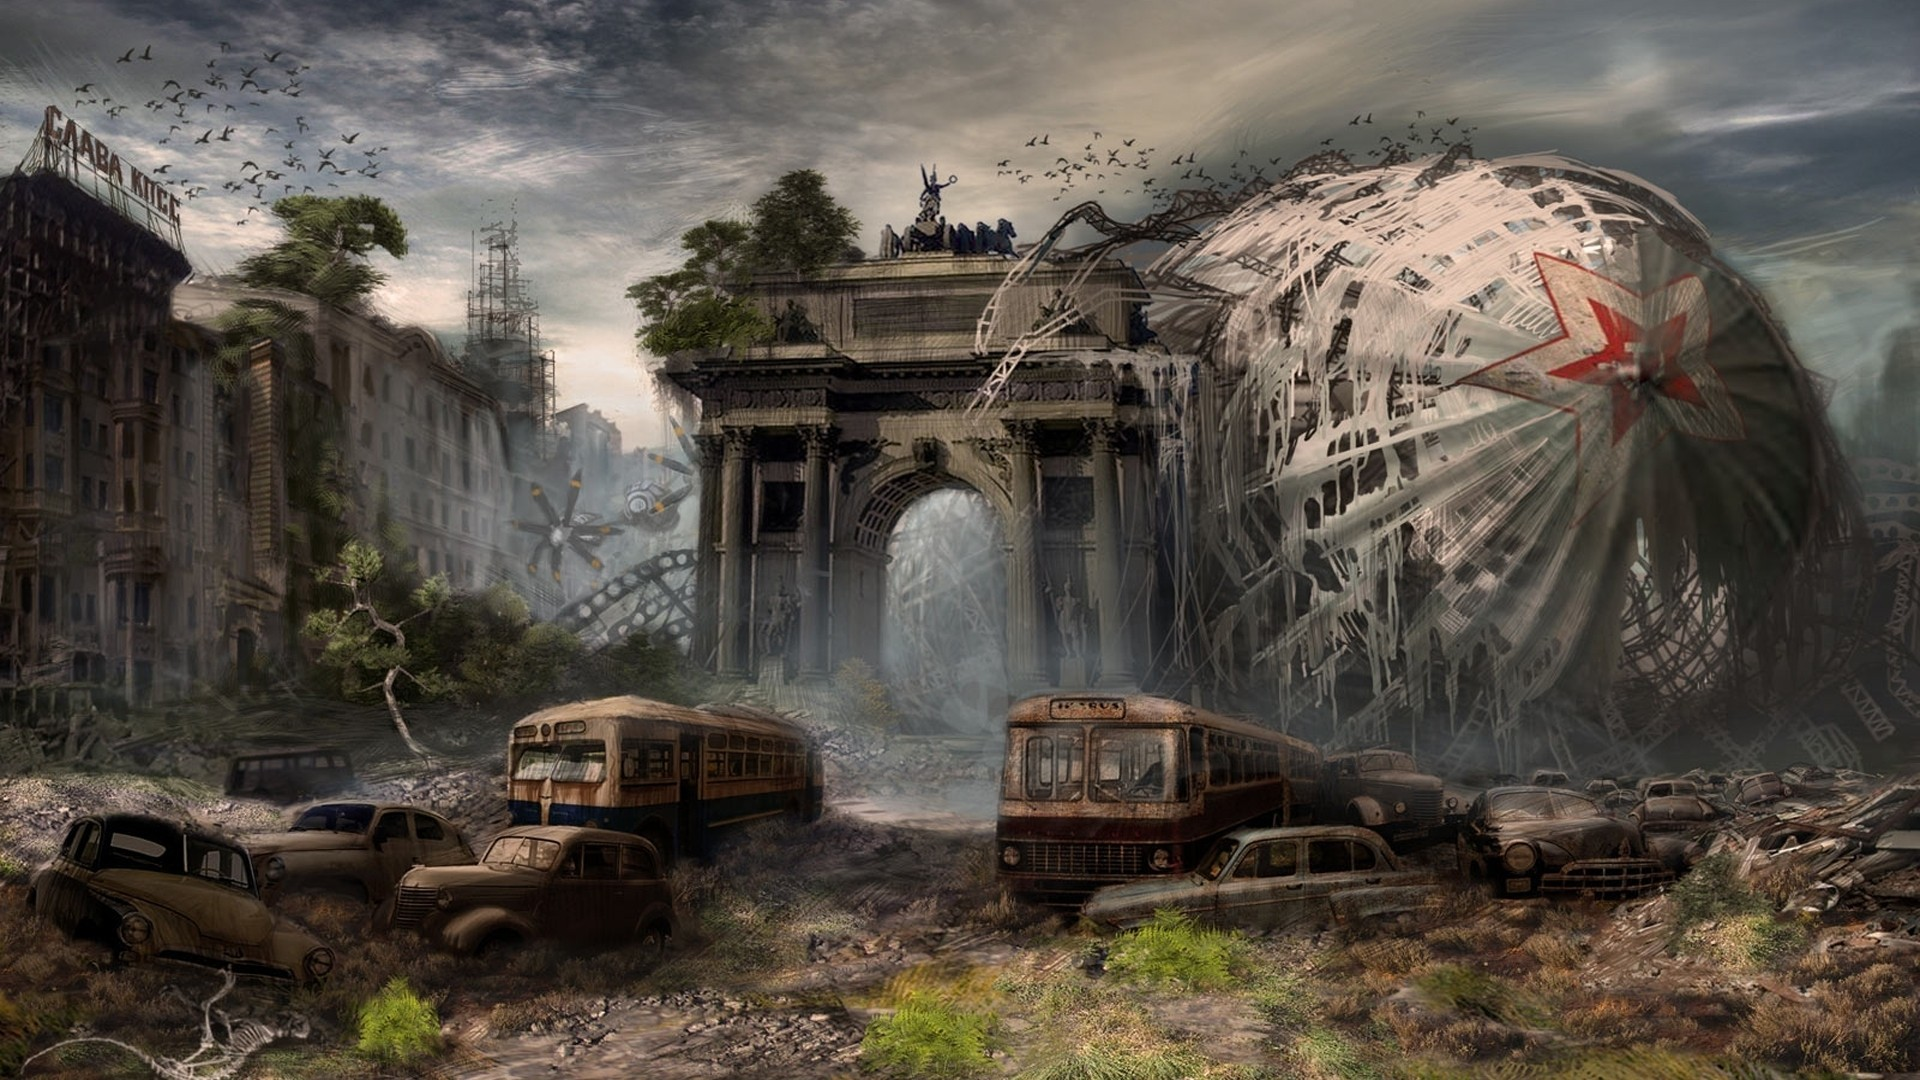 Apocalyptic Art Gallery | Sci Fi Post Apocalyptic Wallpaper/Background 1920  x 1080 – Id